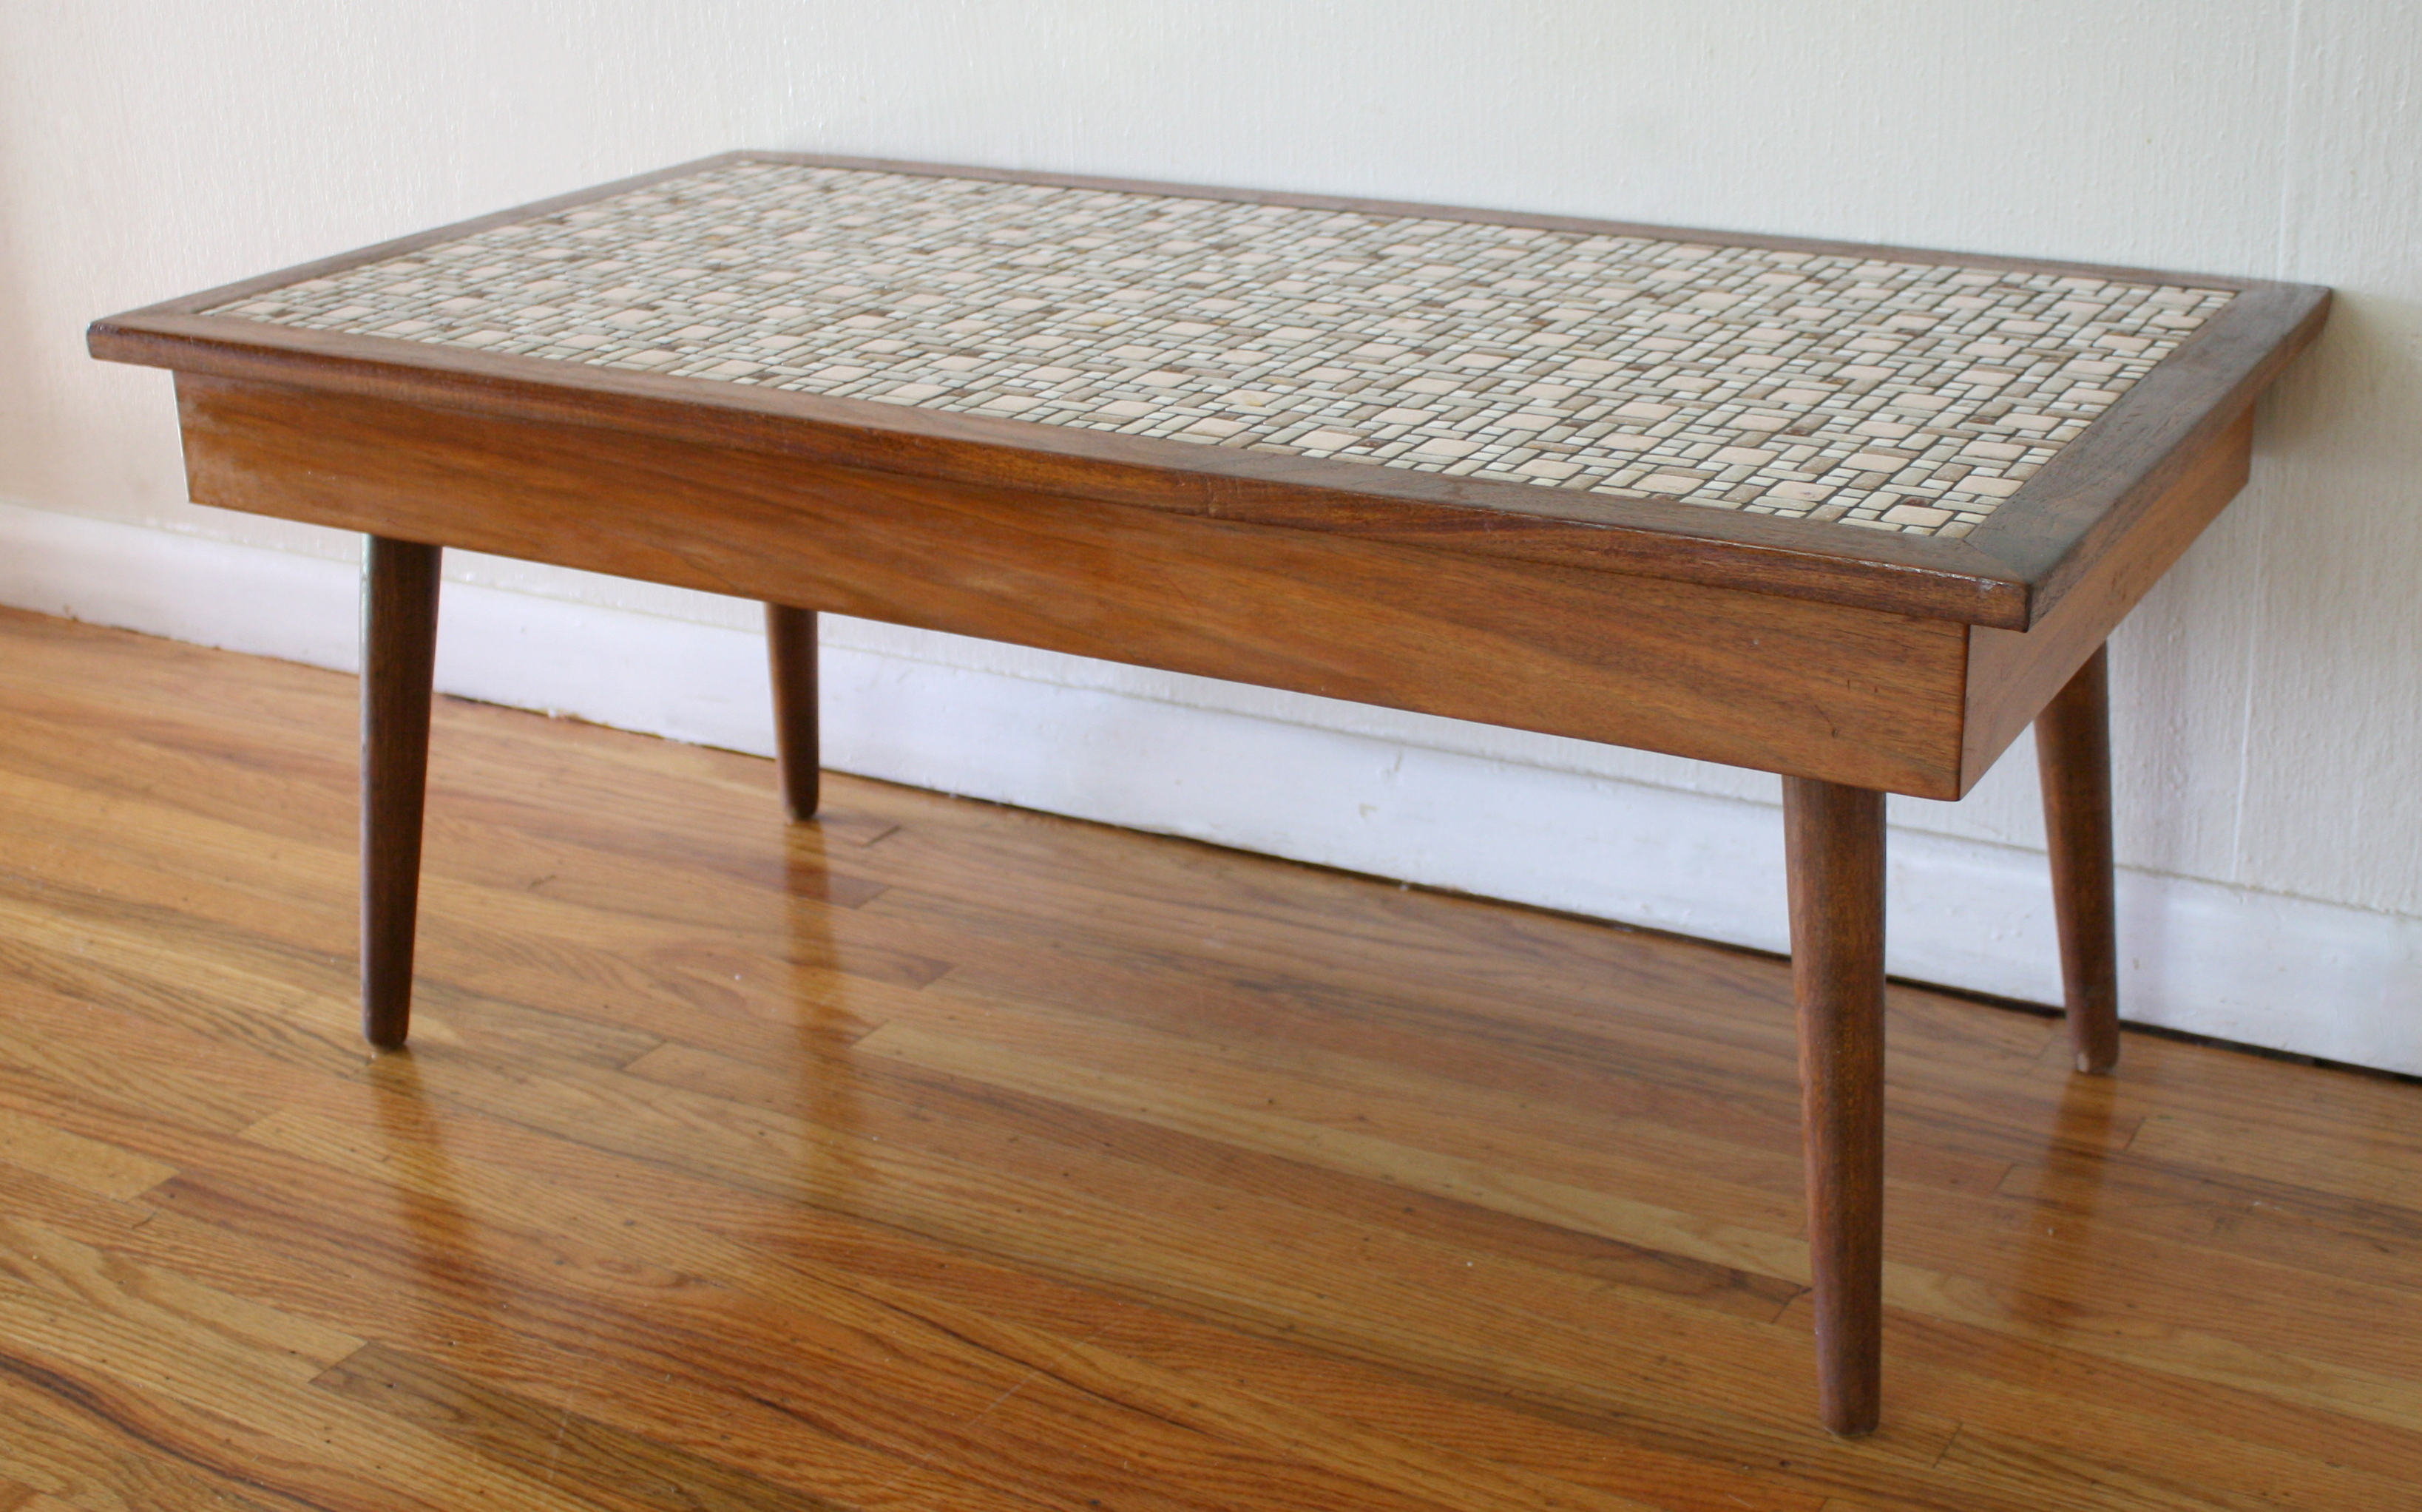 Mid century modern tile top coffee table picked vintage for Mid century modern coffee table